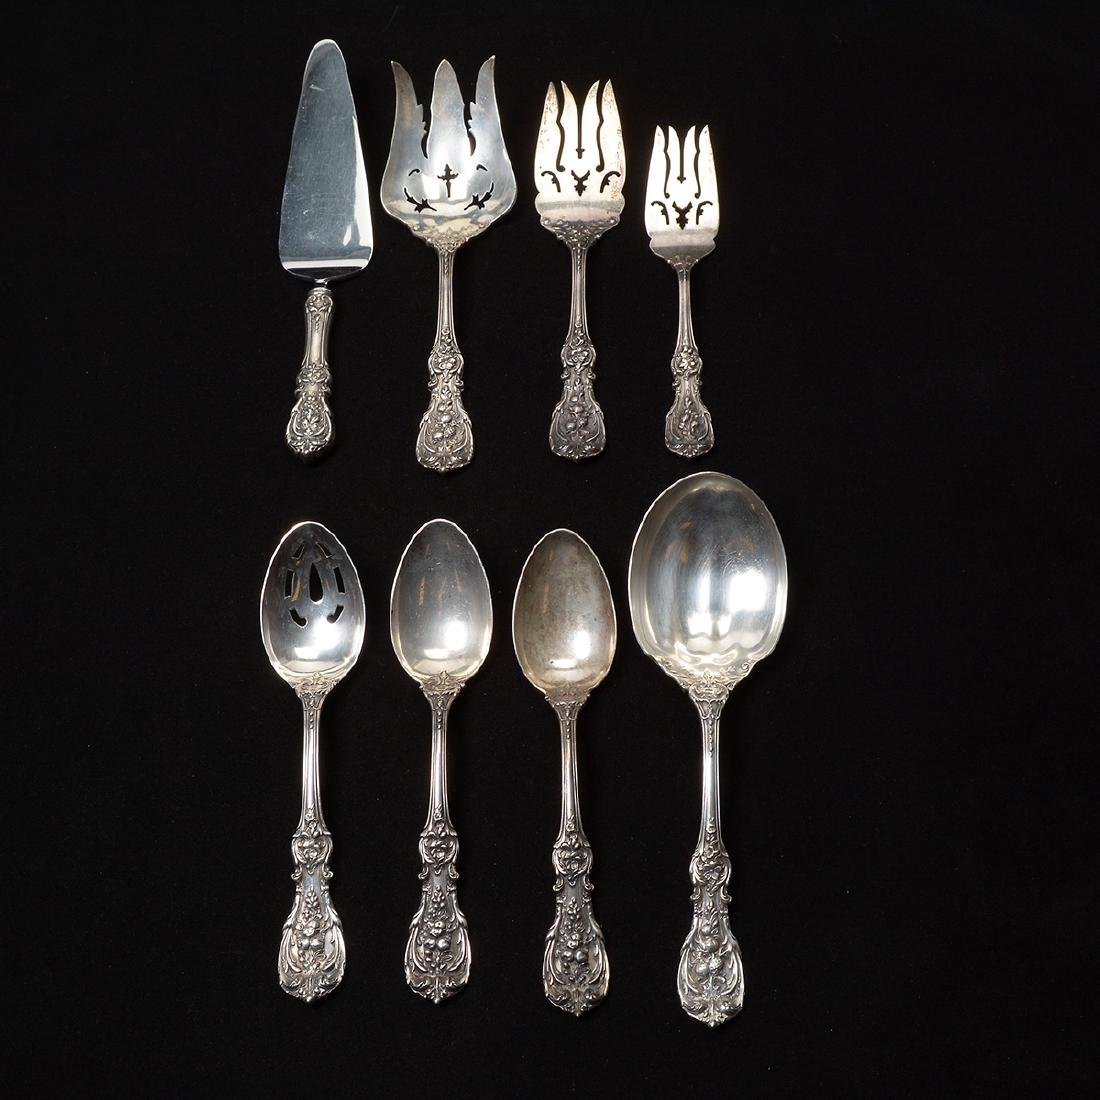 Reed & Barton Sterling Silver Flatware Set, Including